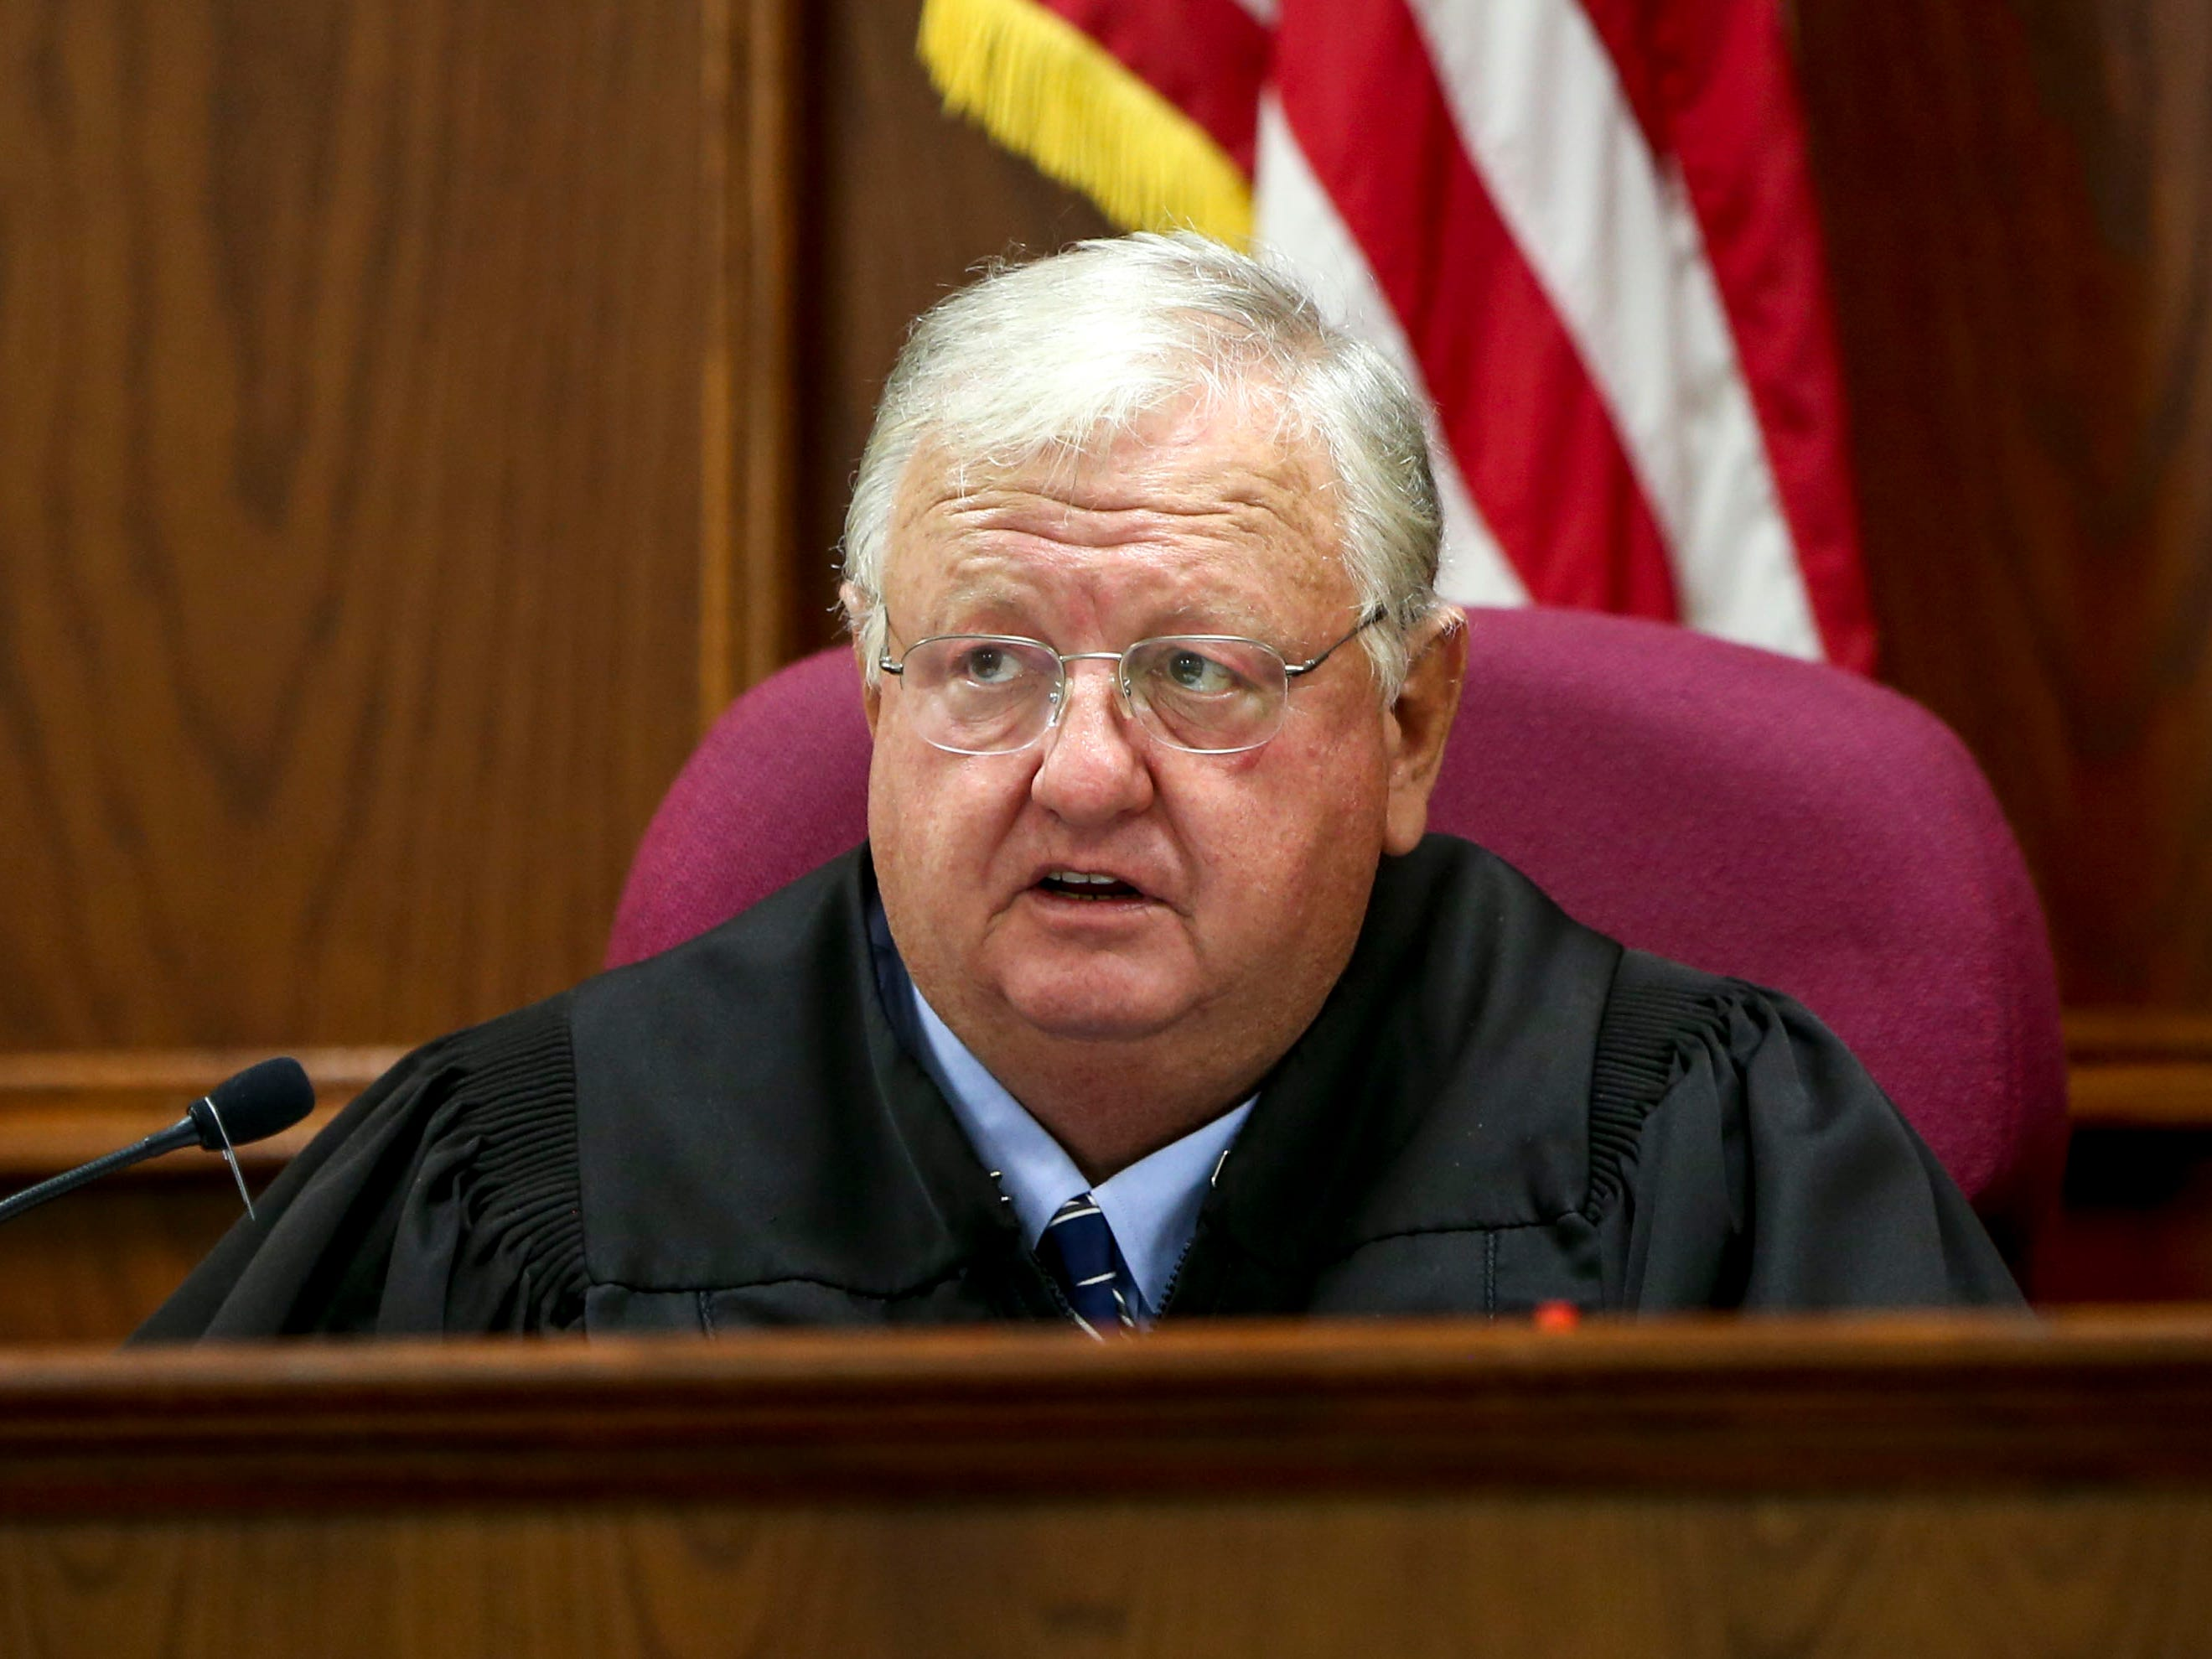 Judge Blake Anderson speaks to attorneys requesting the hearing for Keon Stewart be pushed back at a court appearance for Stewart at Jackson City Court in Jackson, Tenn., on Thursday, Nov. 15, 2018.